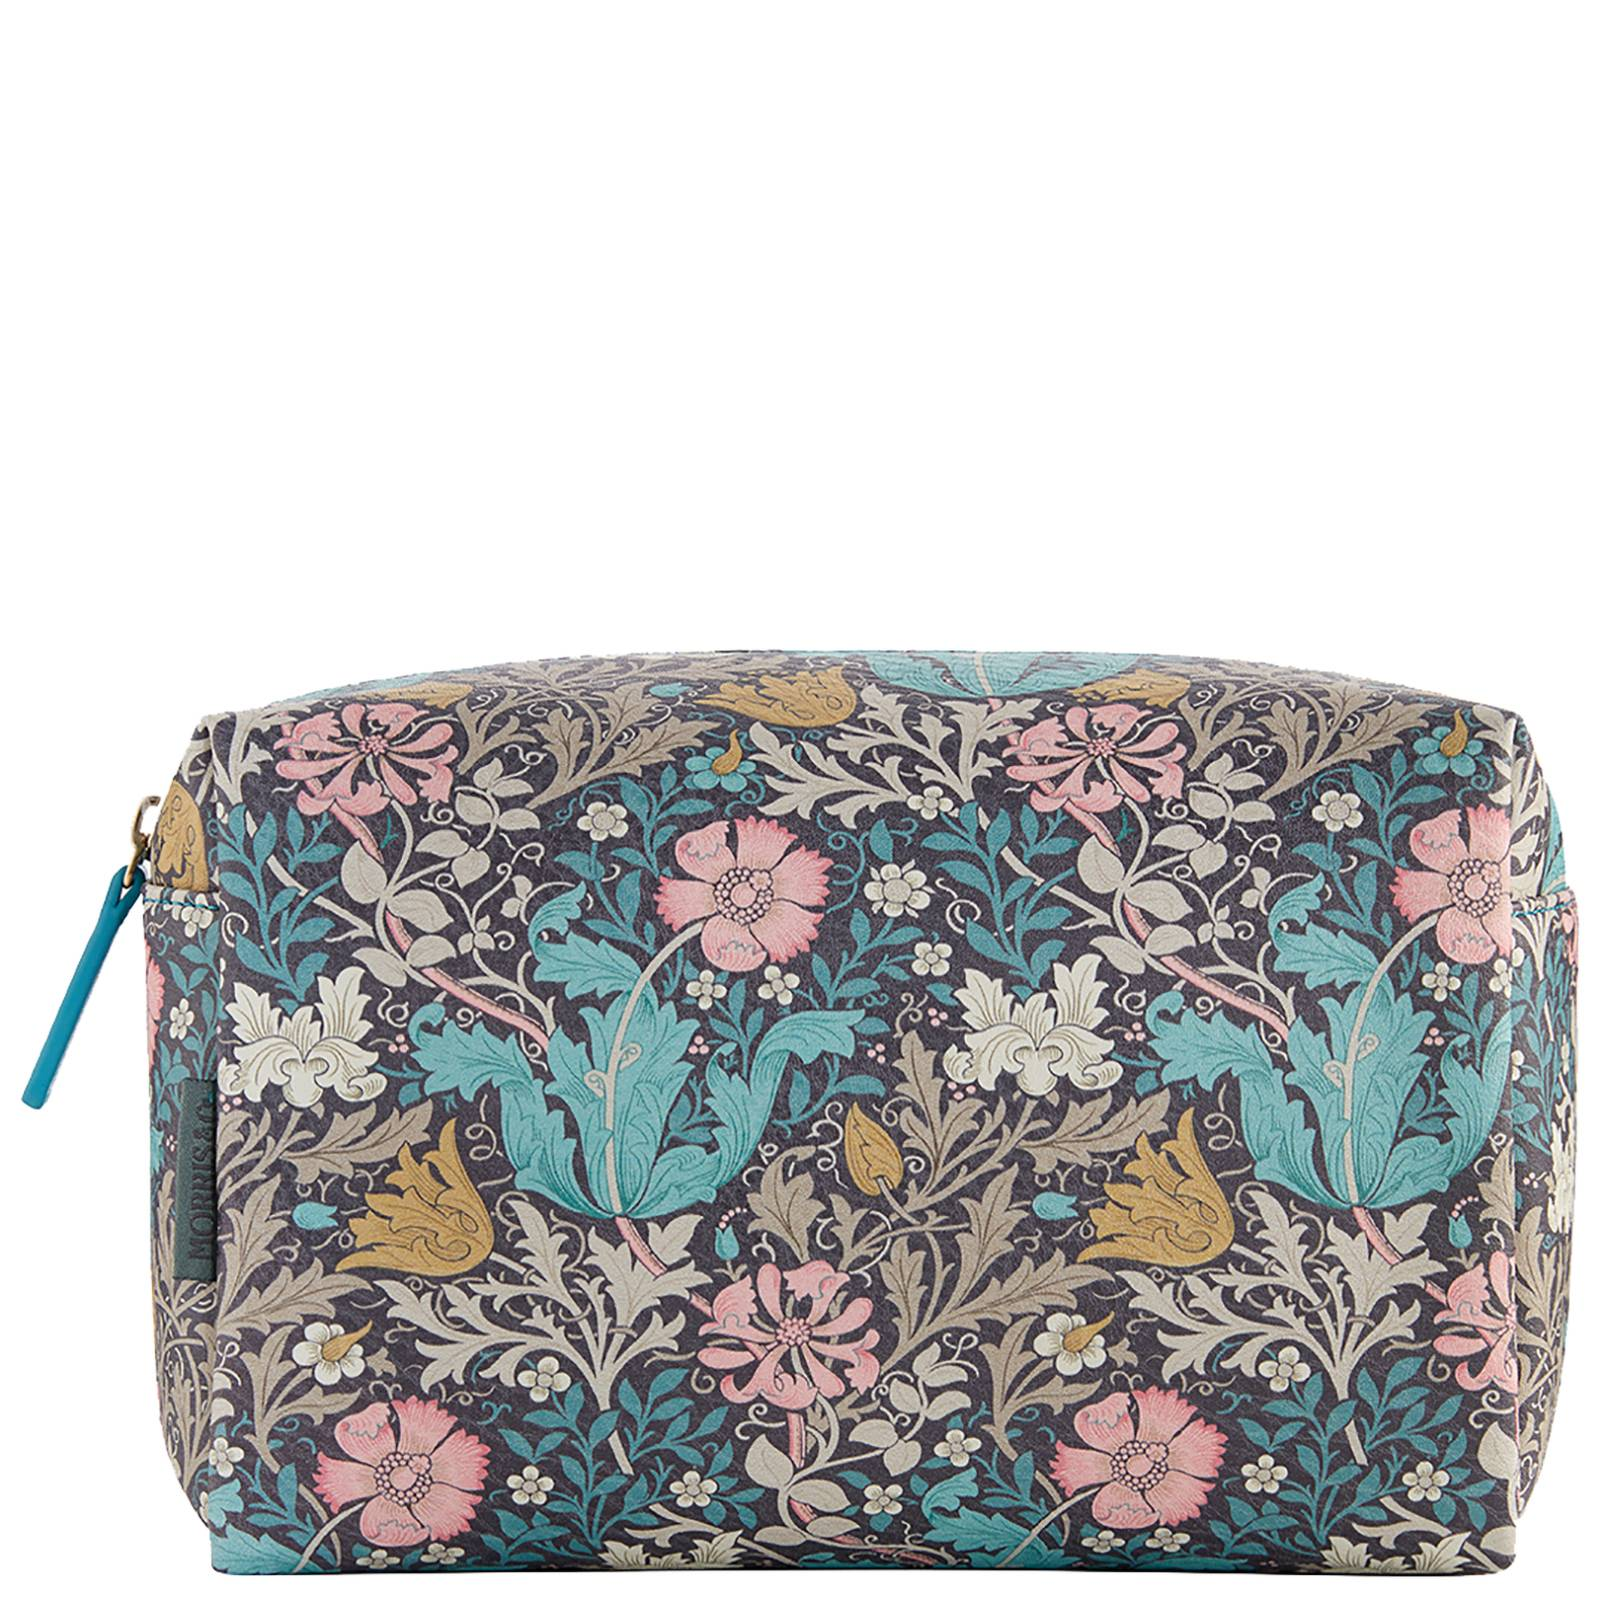 MORRIS & Co - Pink Clay & Honeysuckle Large Wash Bag for Women